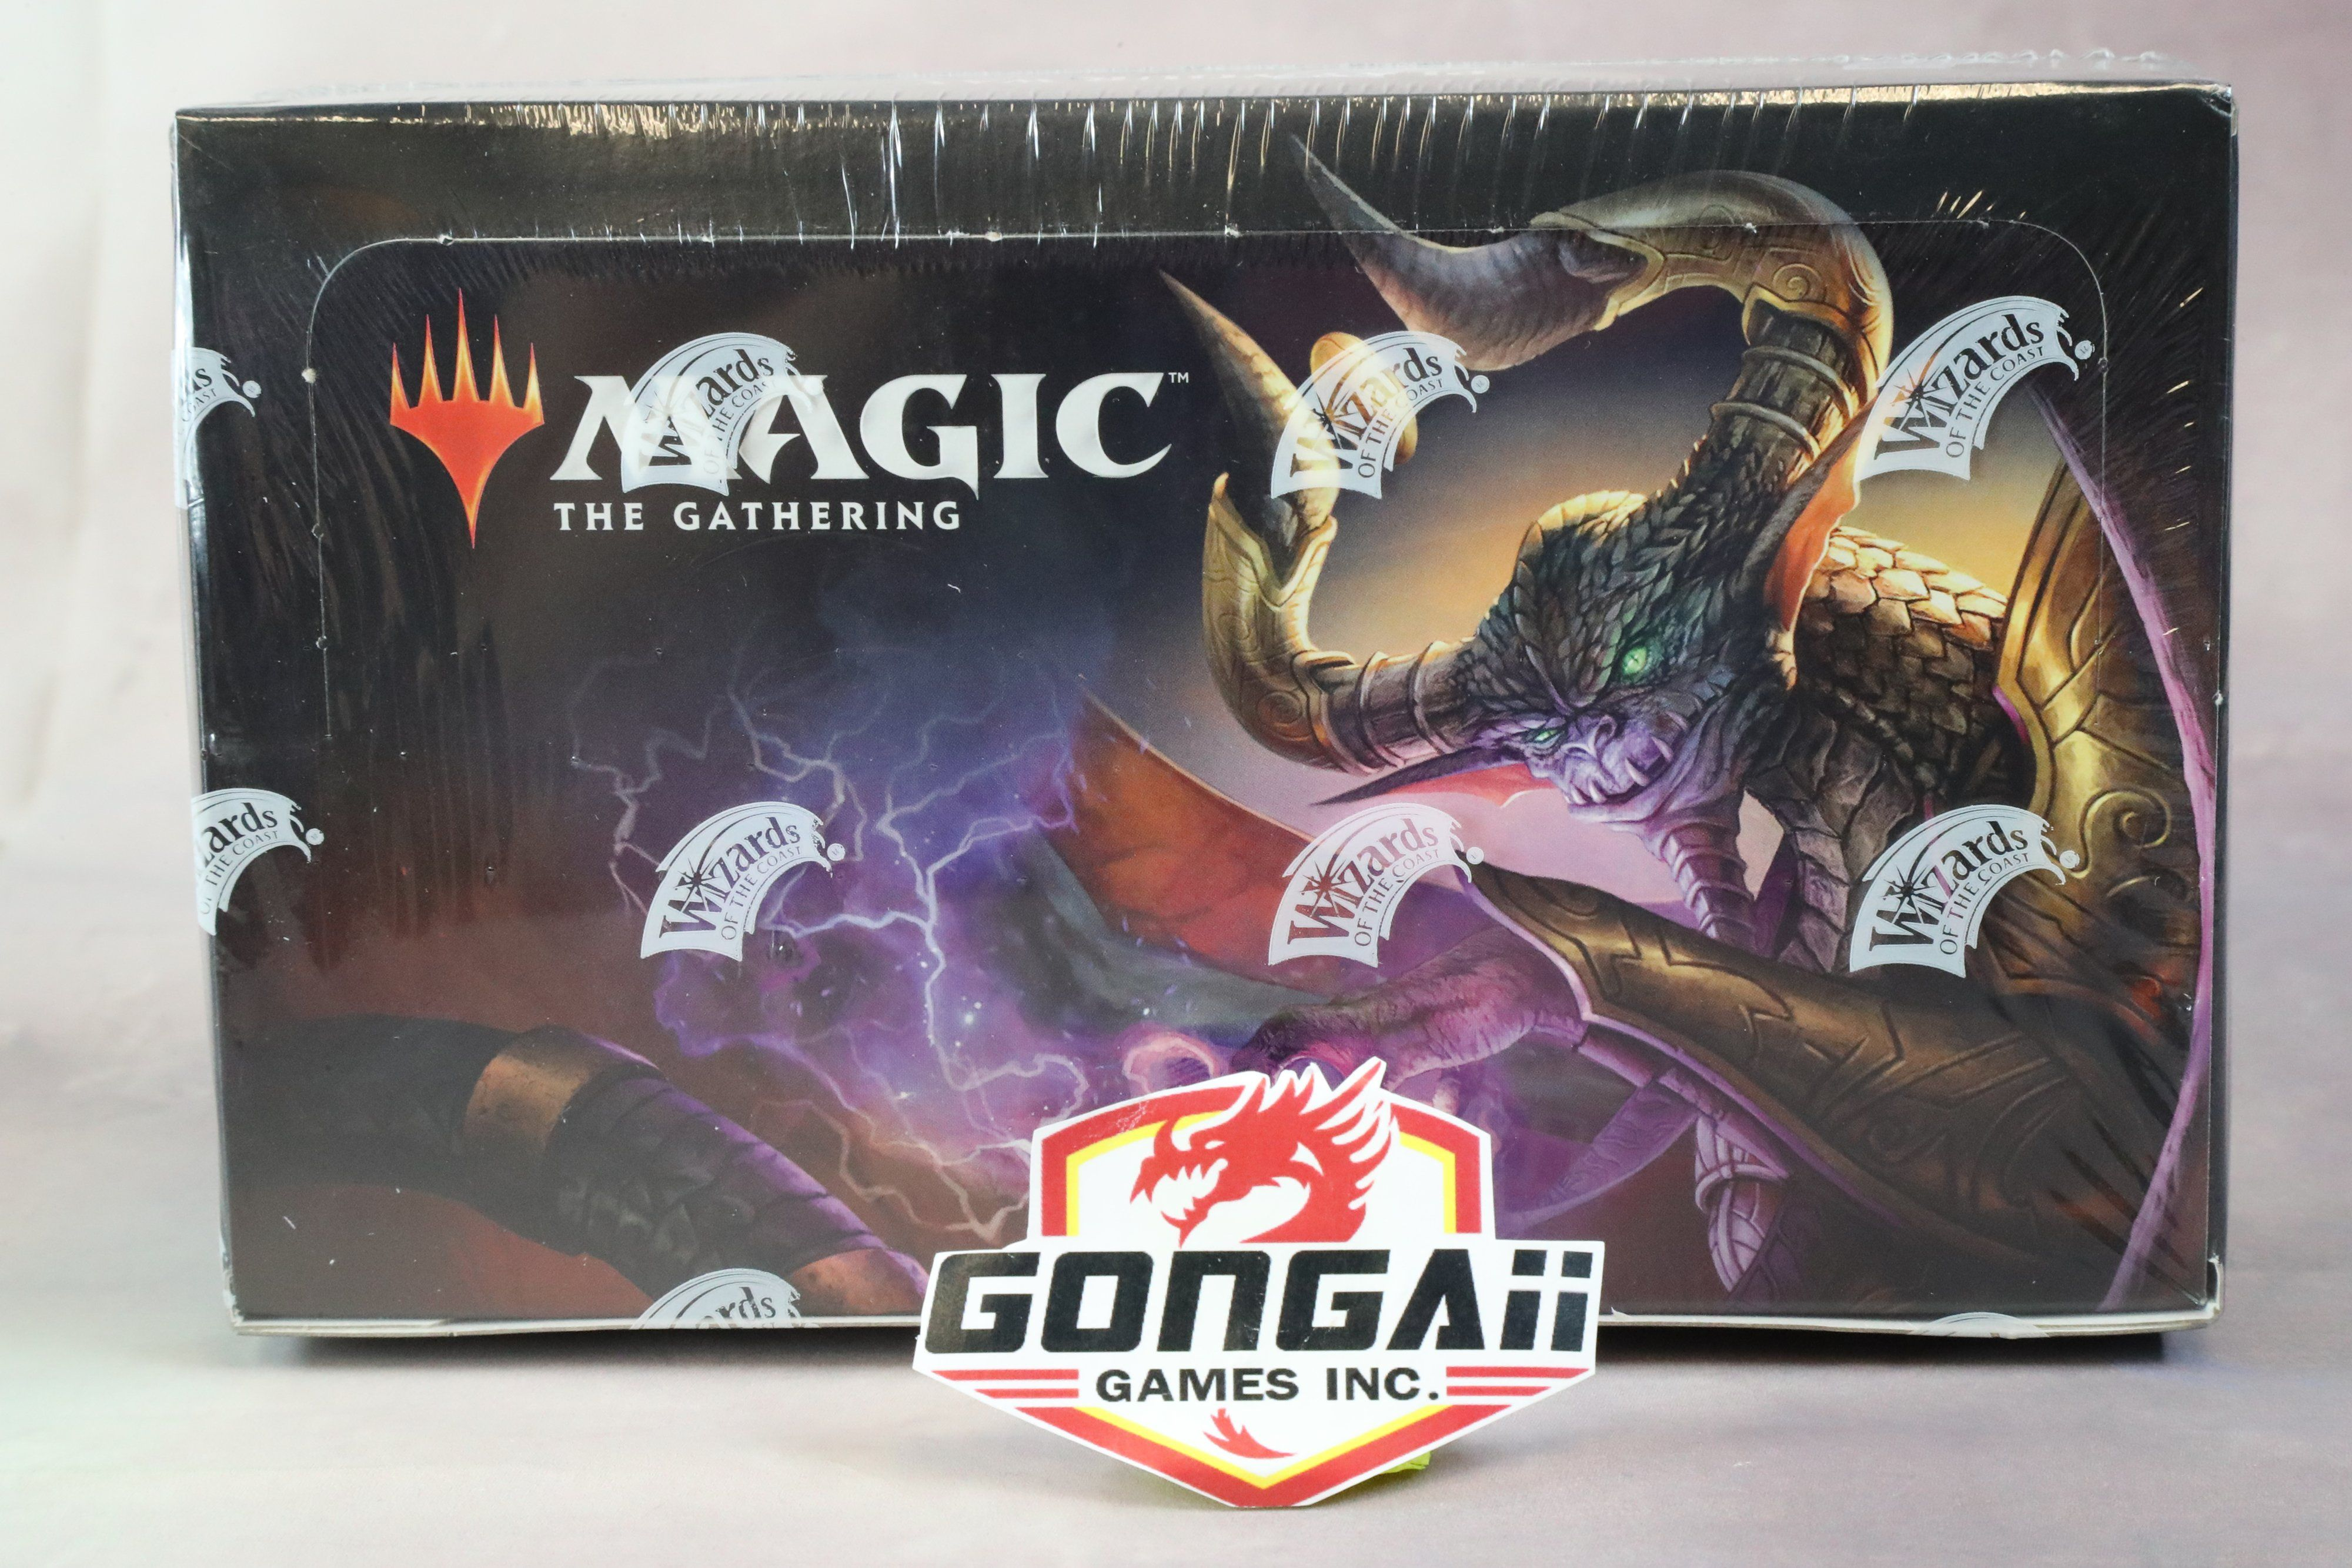 Magic The Gathering Ccg Core 2019 Booster Display 36 Magic The Gathering The Gathering Gathering